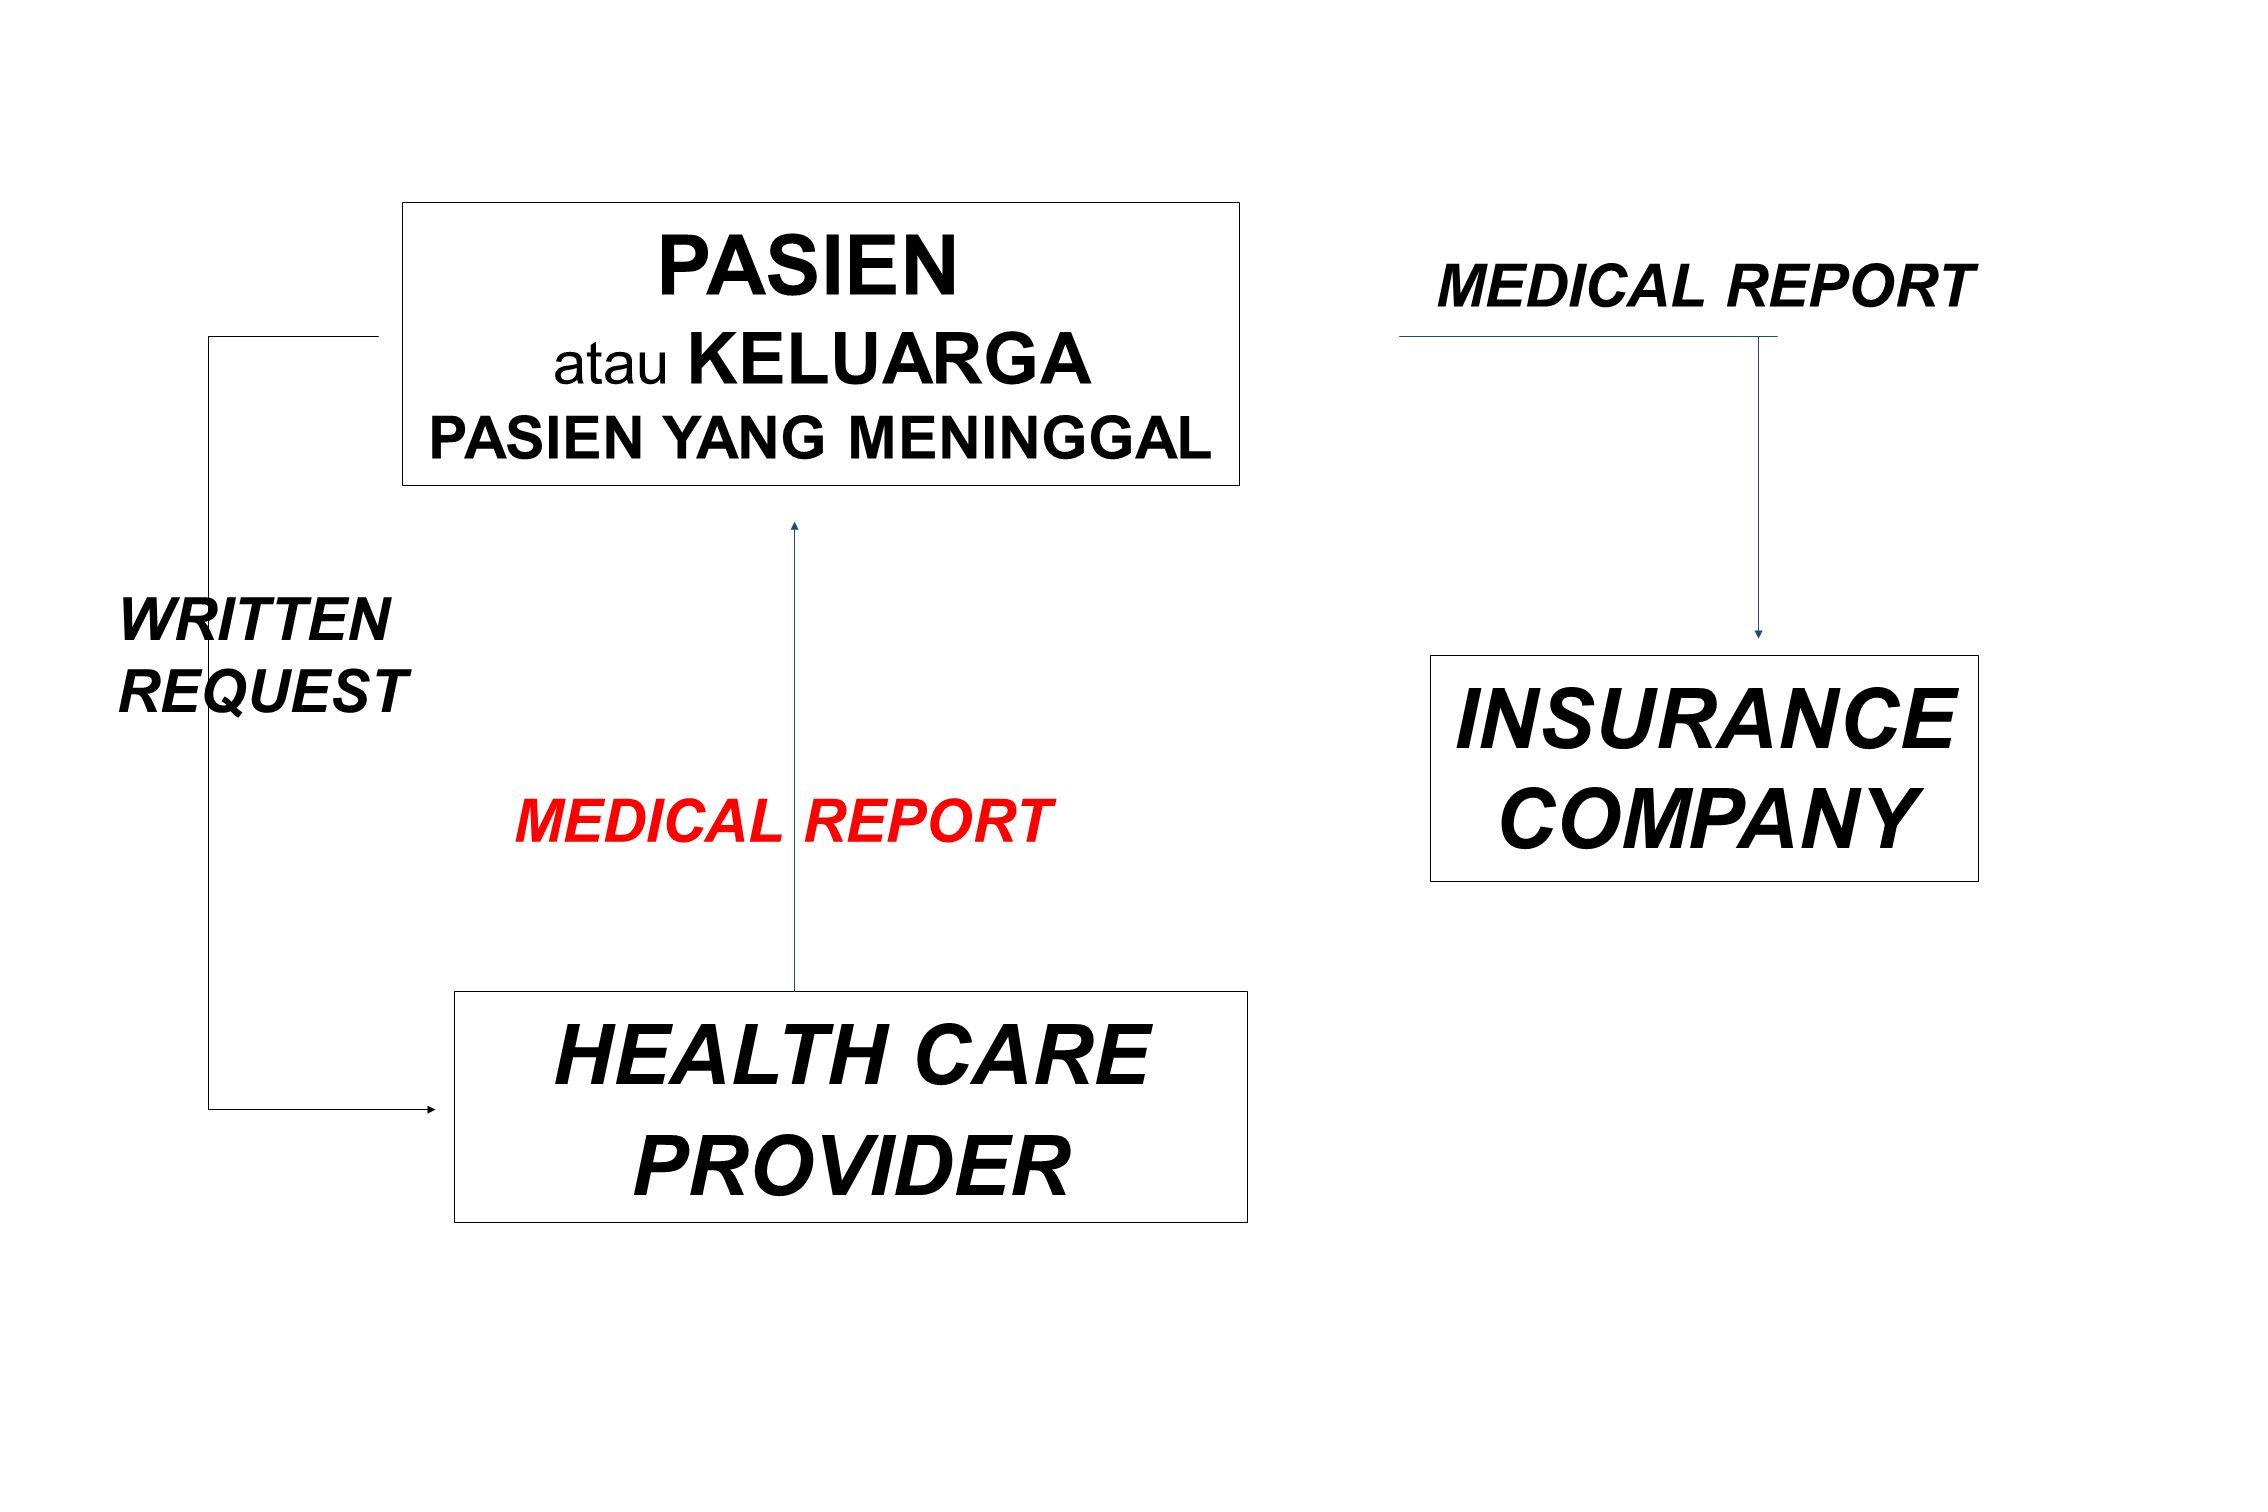 PASIEN INSURANCE COMPANY HEALTH CARE PROVIDER